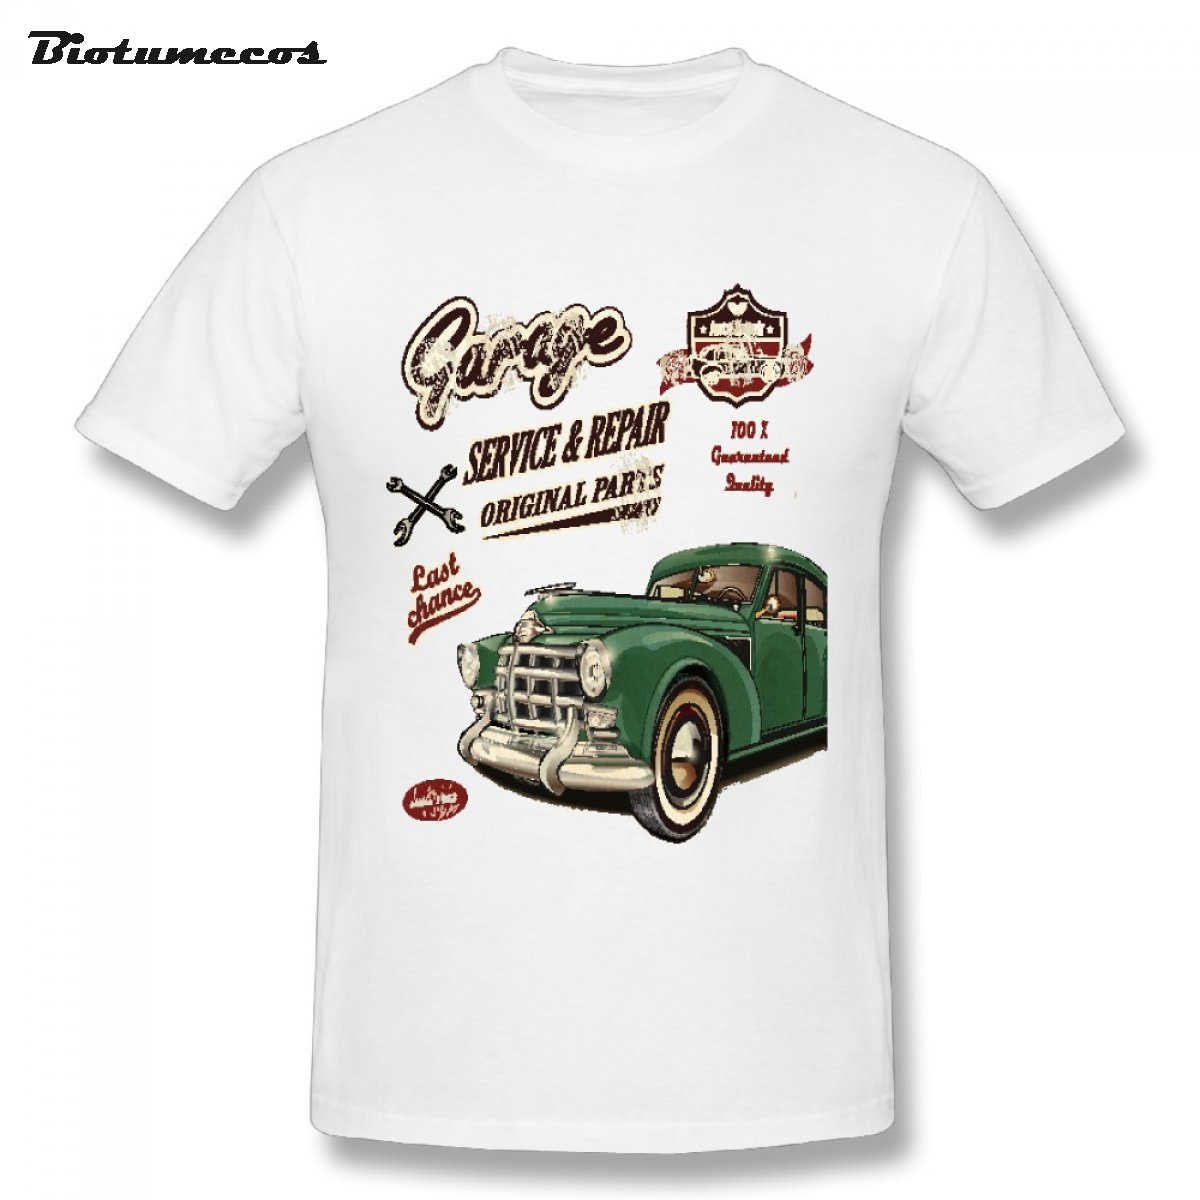 New Brand Men Tshirts Garage Last Chance Service Or Repair Original Paris Green Bubble Car Printed Top Clothing Mtcc081